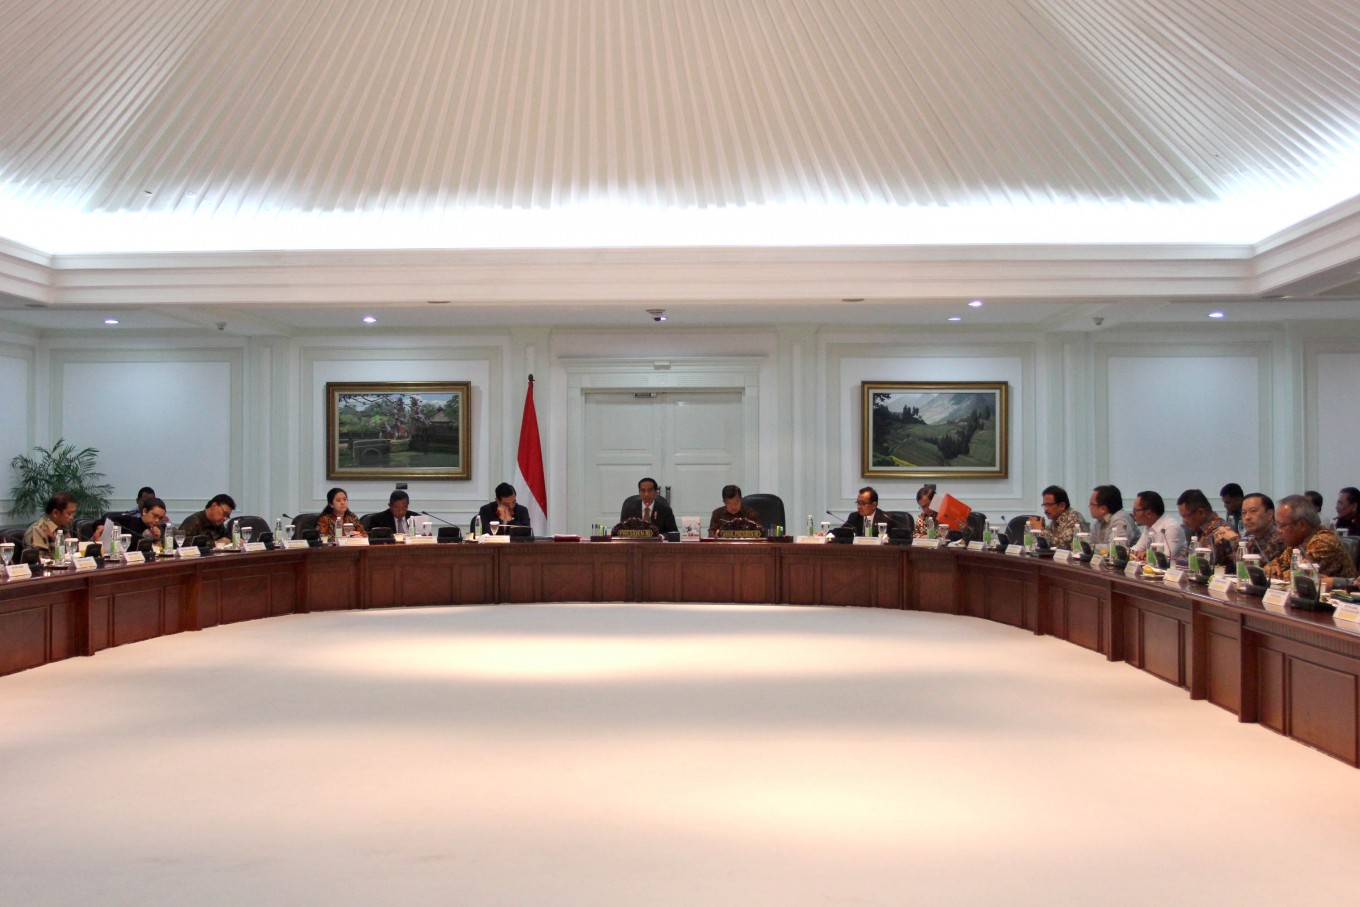 Indonesia records 1.49 percent budget deficit as of May